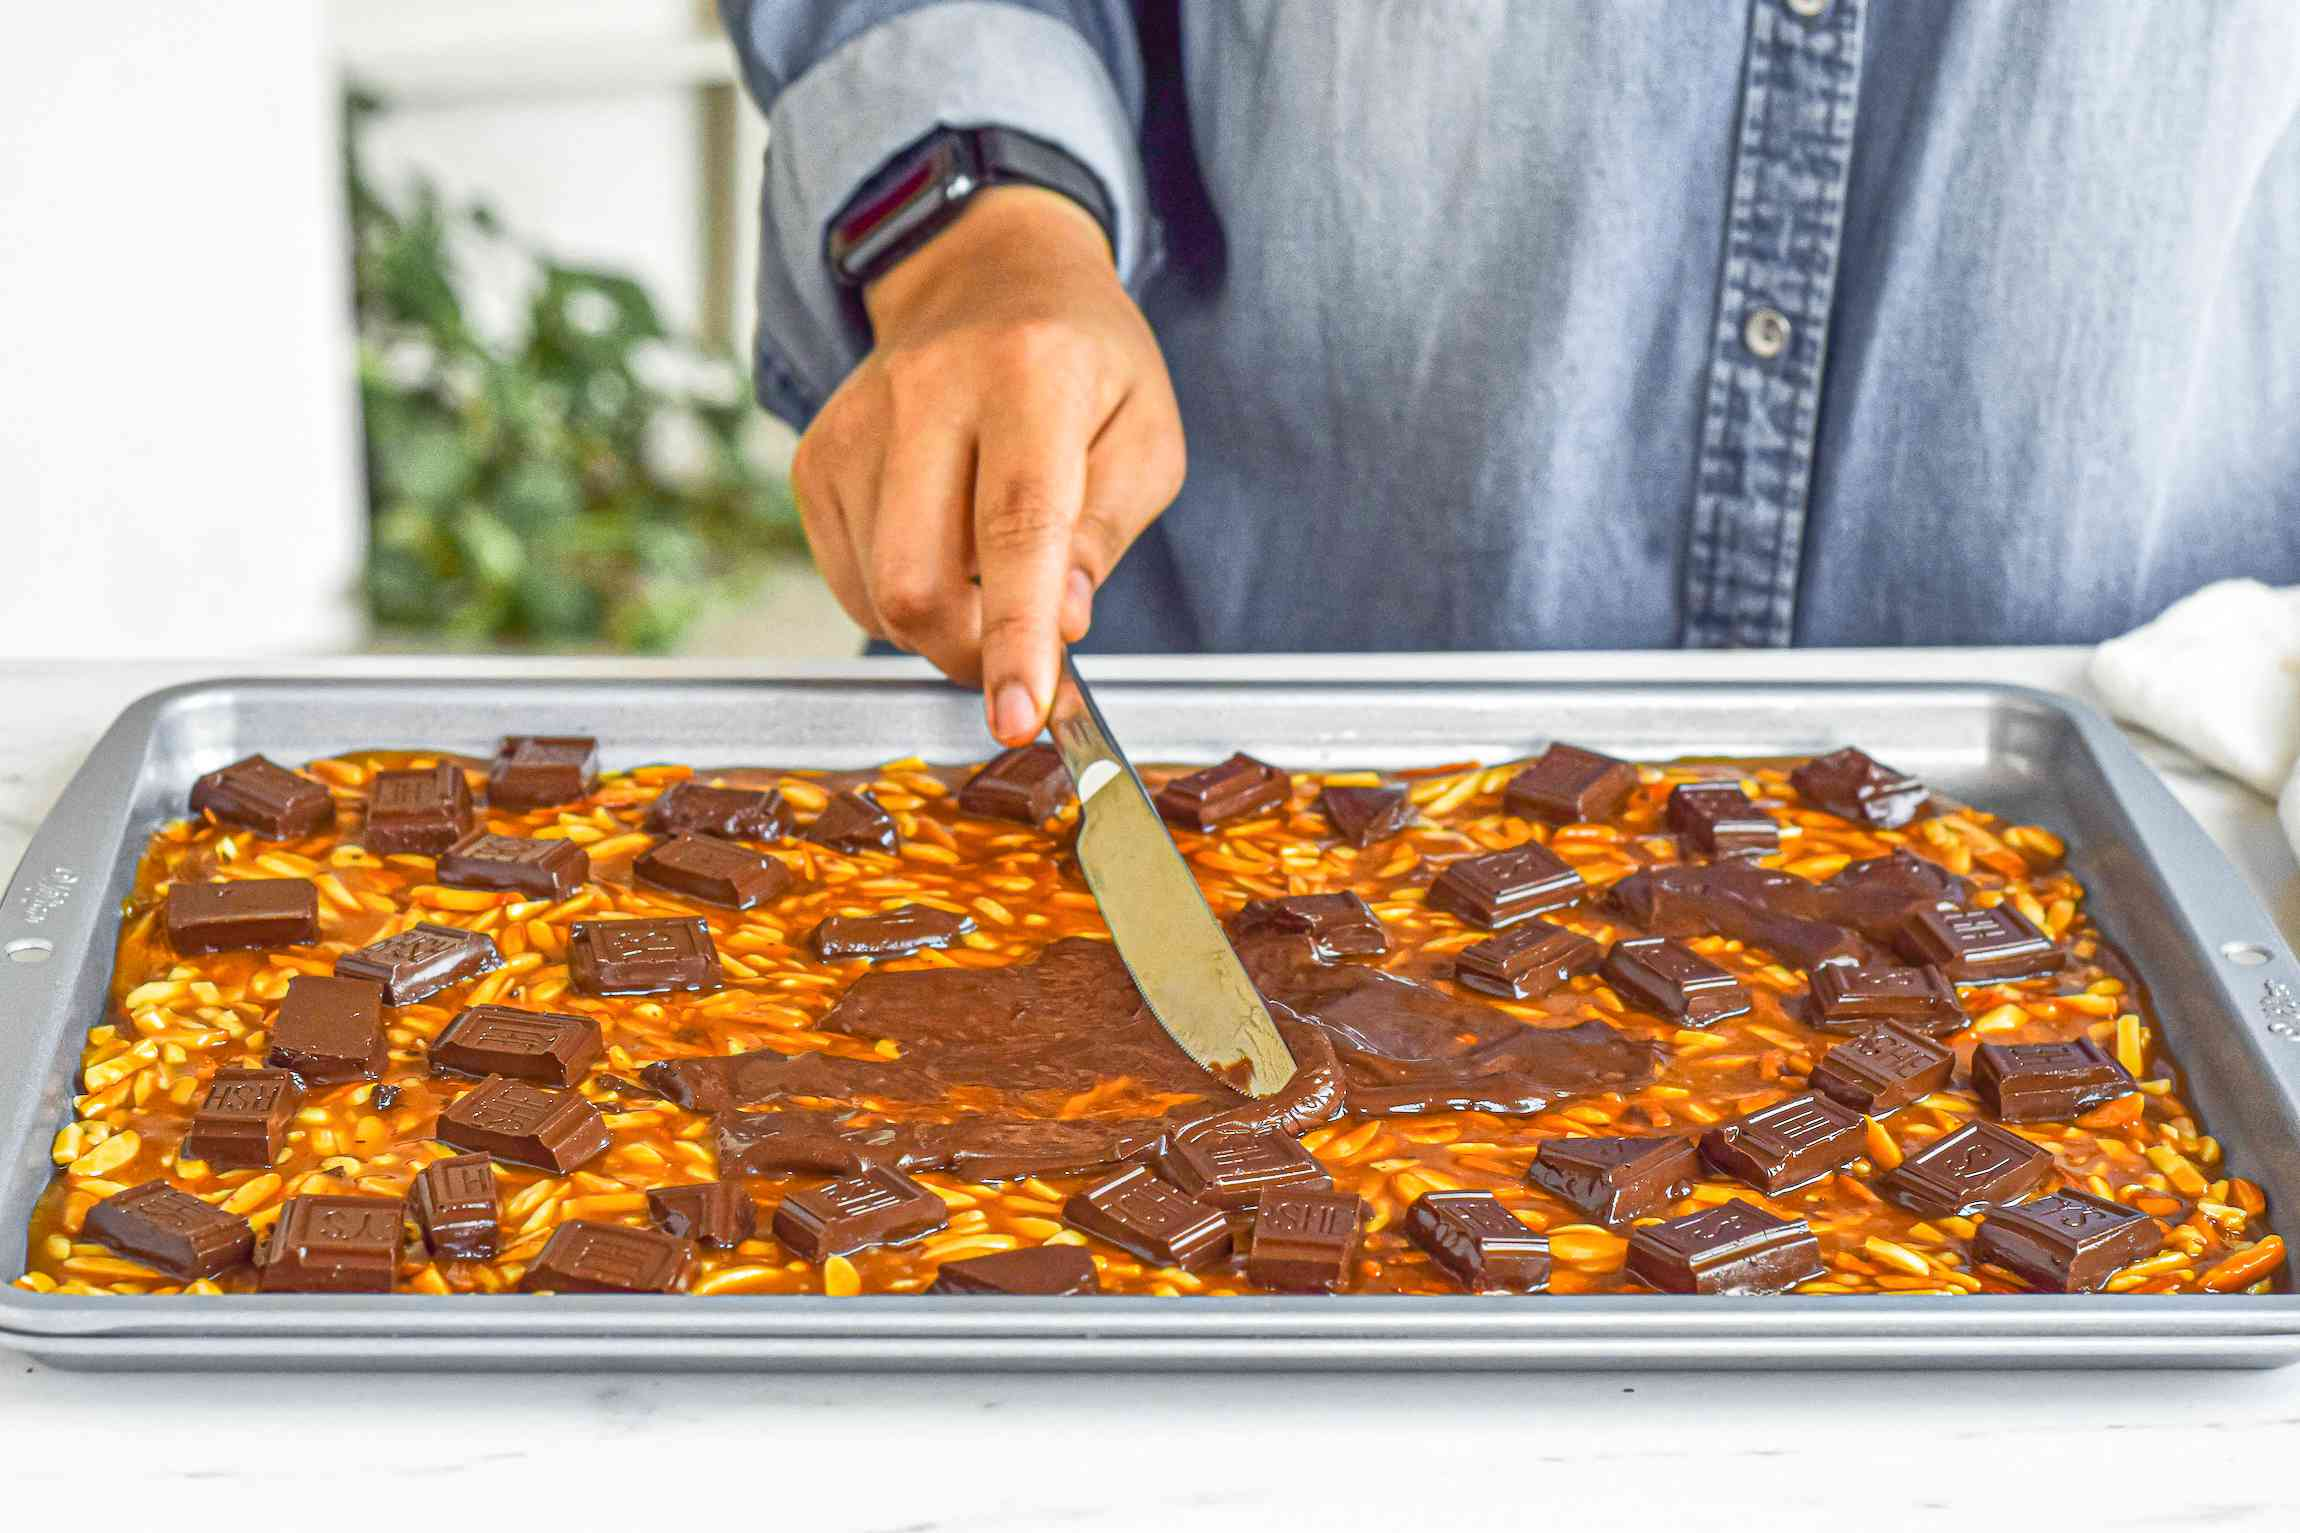 Spreading melted chocolate over almond roca.